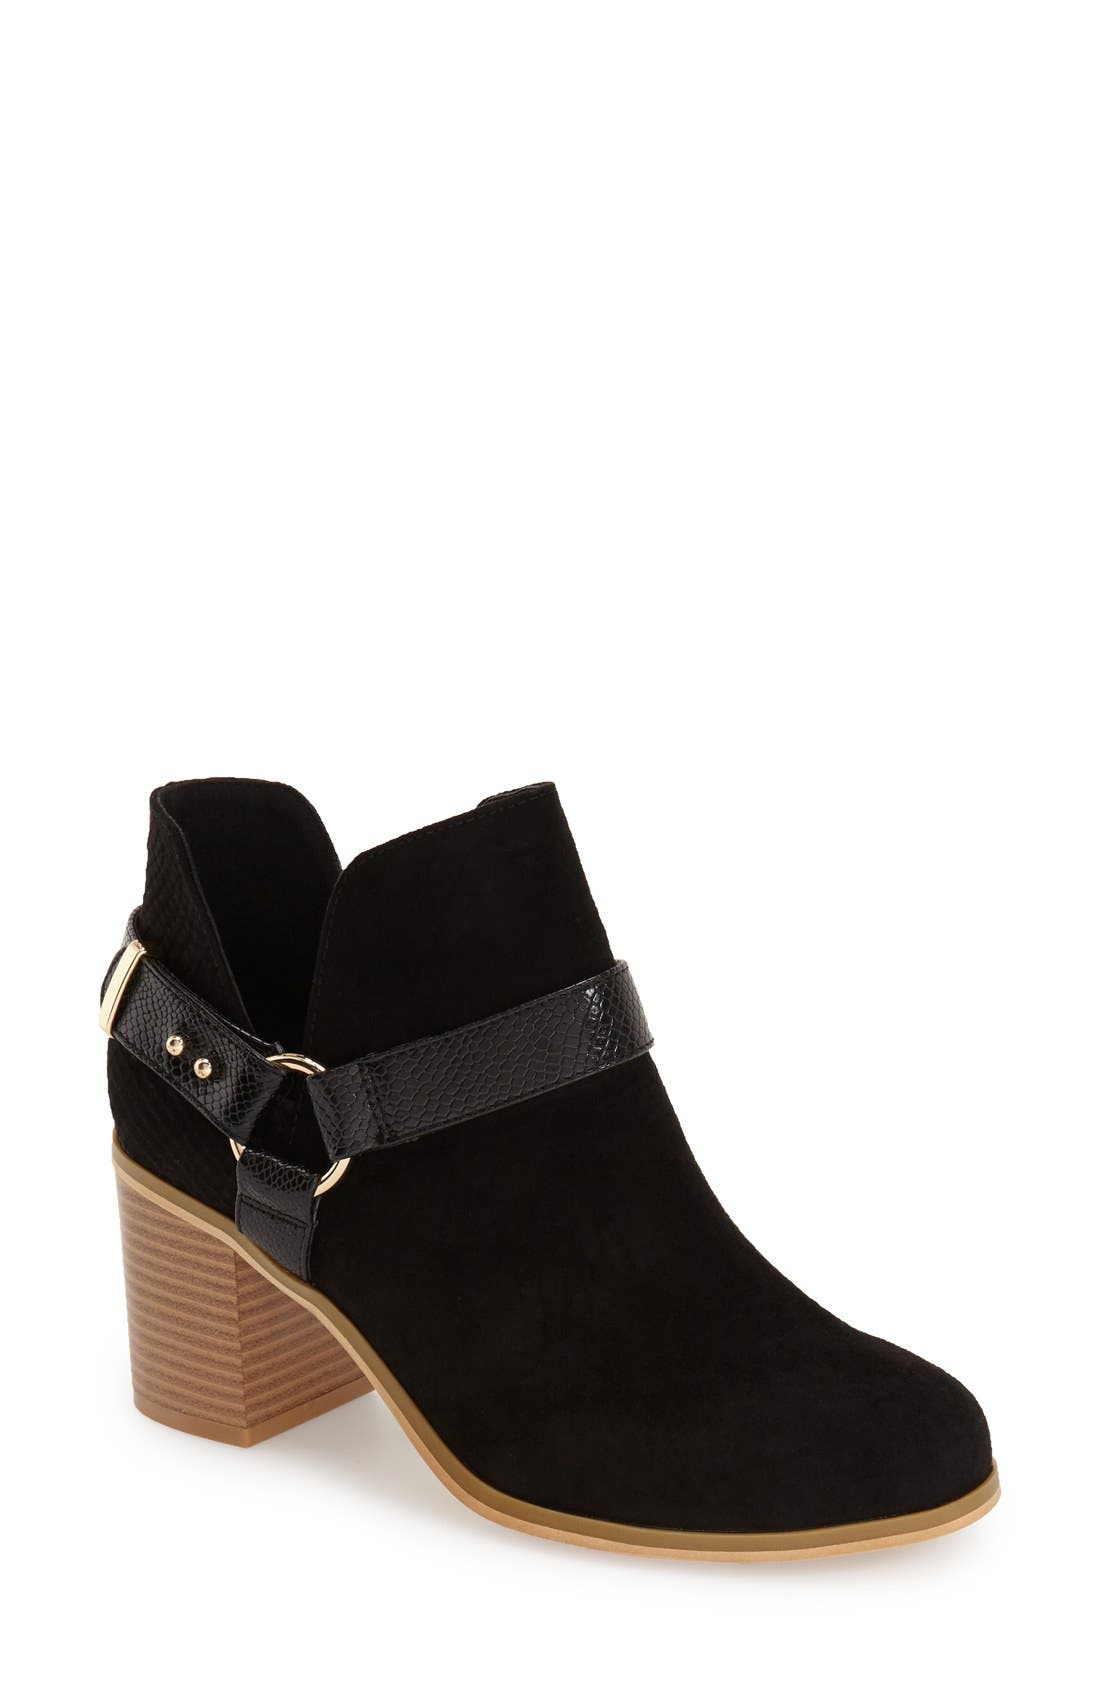 Alternate Image 1 Selected - Topshop 'Beckley' Ring Strap Bootie (Women)